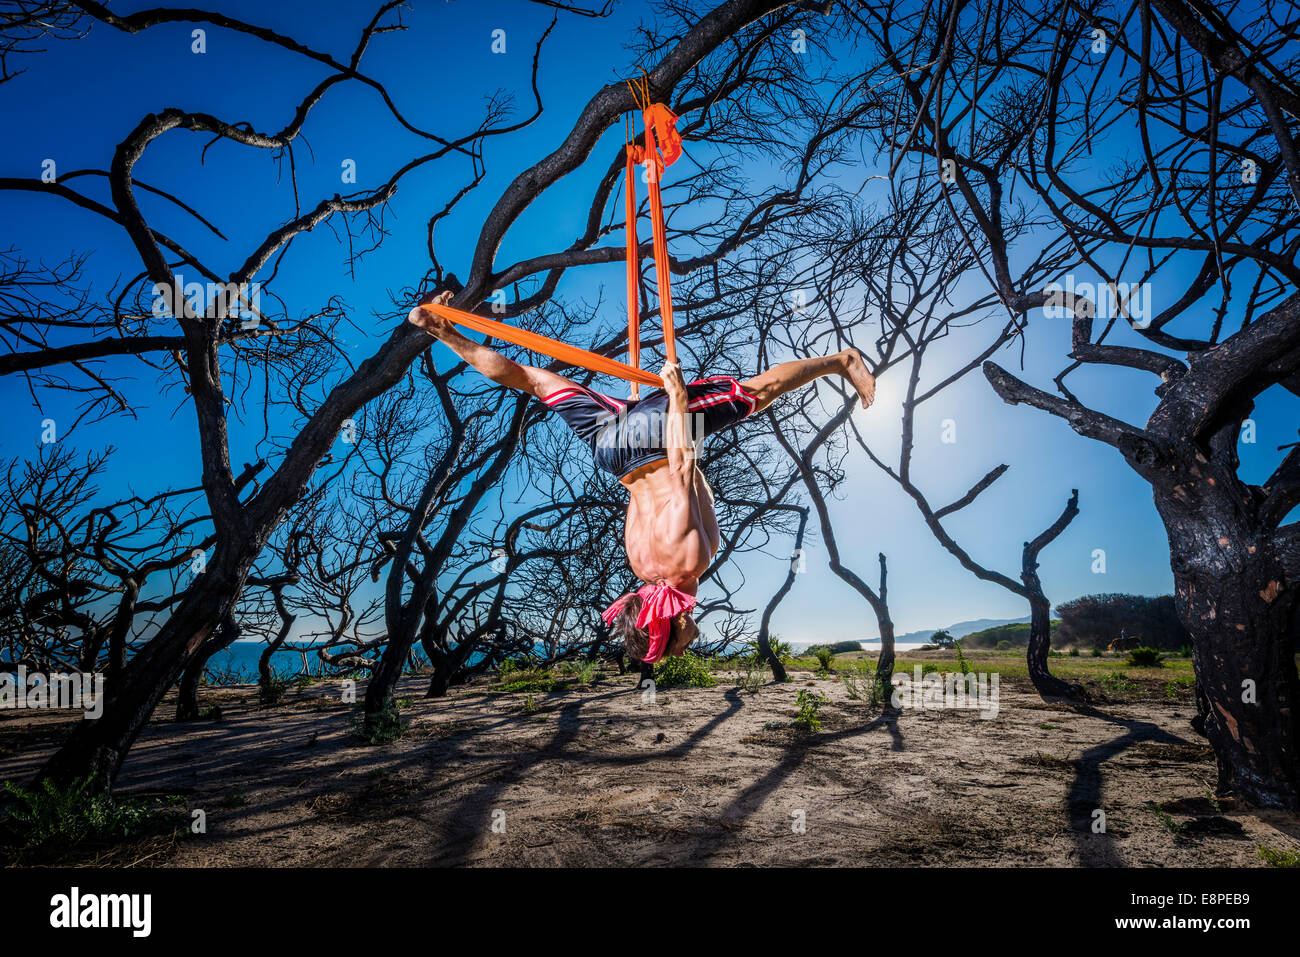 Aero Yoga. Man hanging from a tree and stretching. - Stock Image